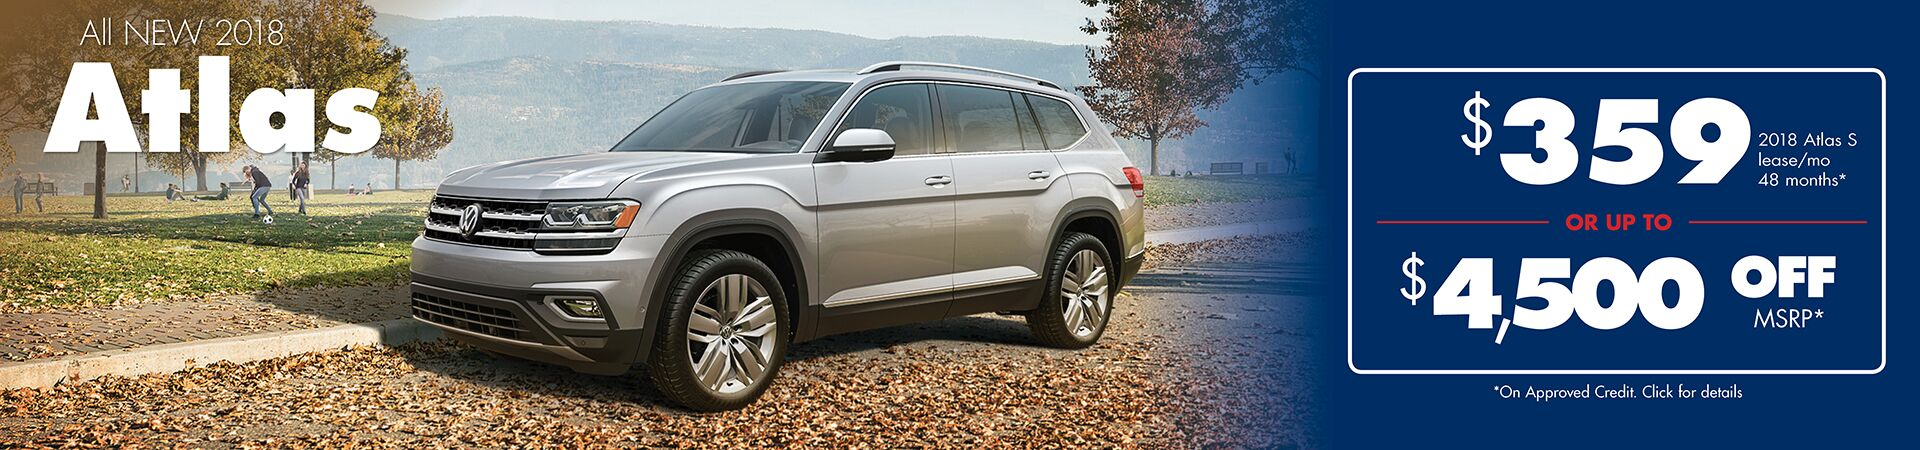 New 2018 Volkswagen Atlas Lease or Purchase Special in Seattle